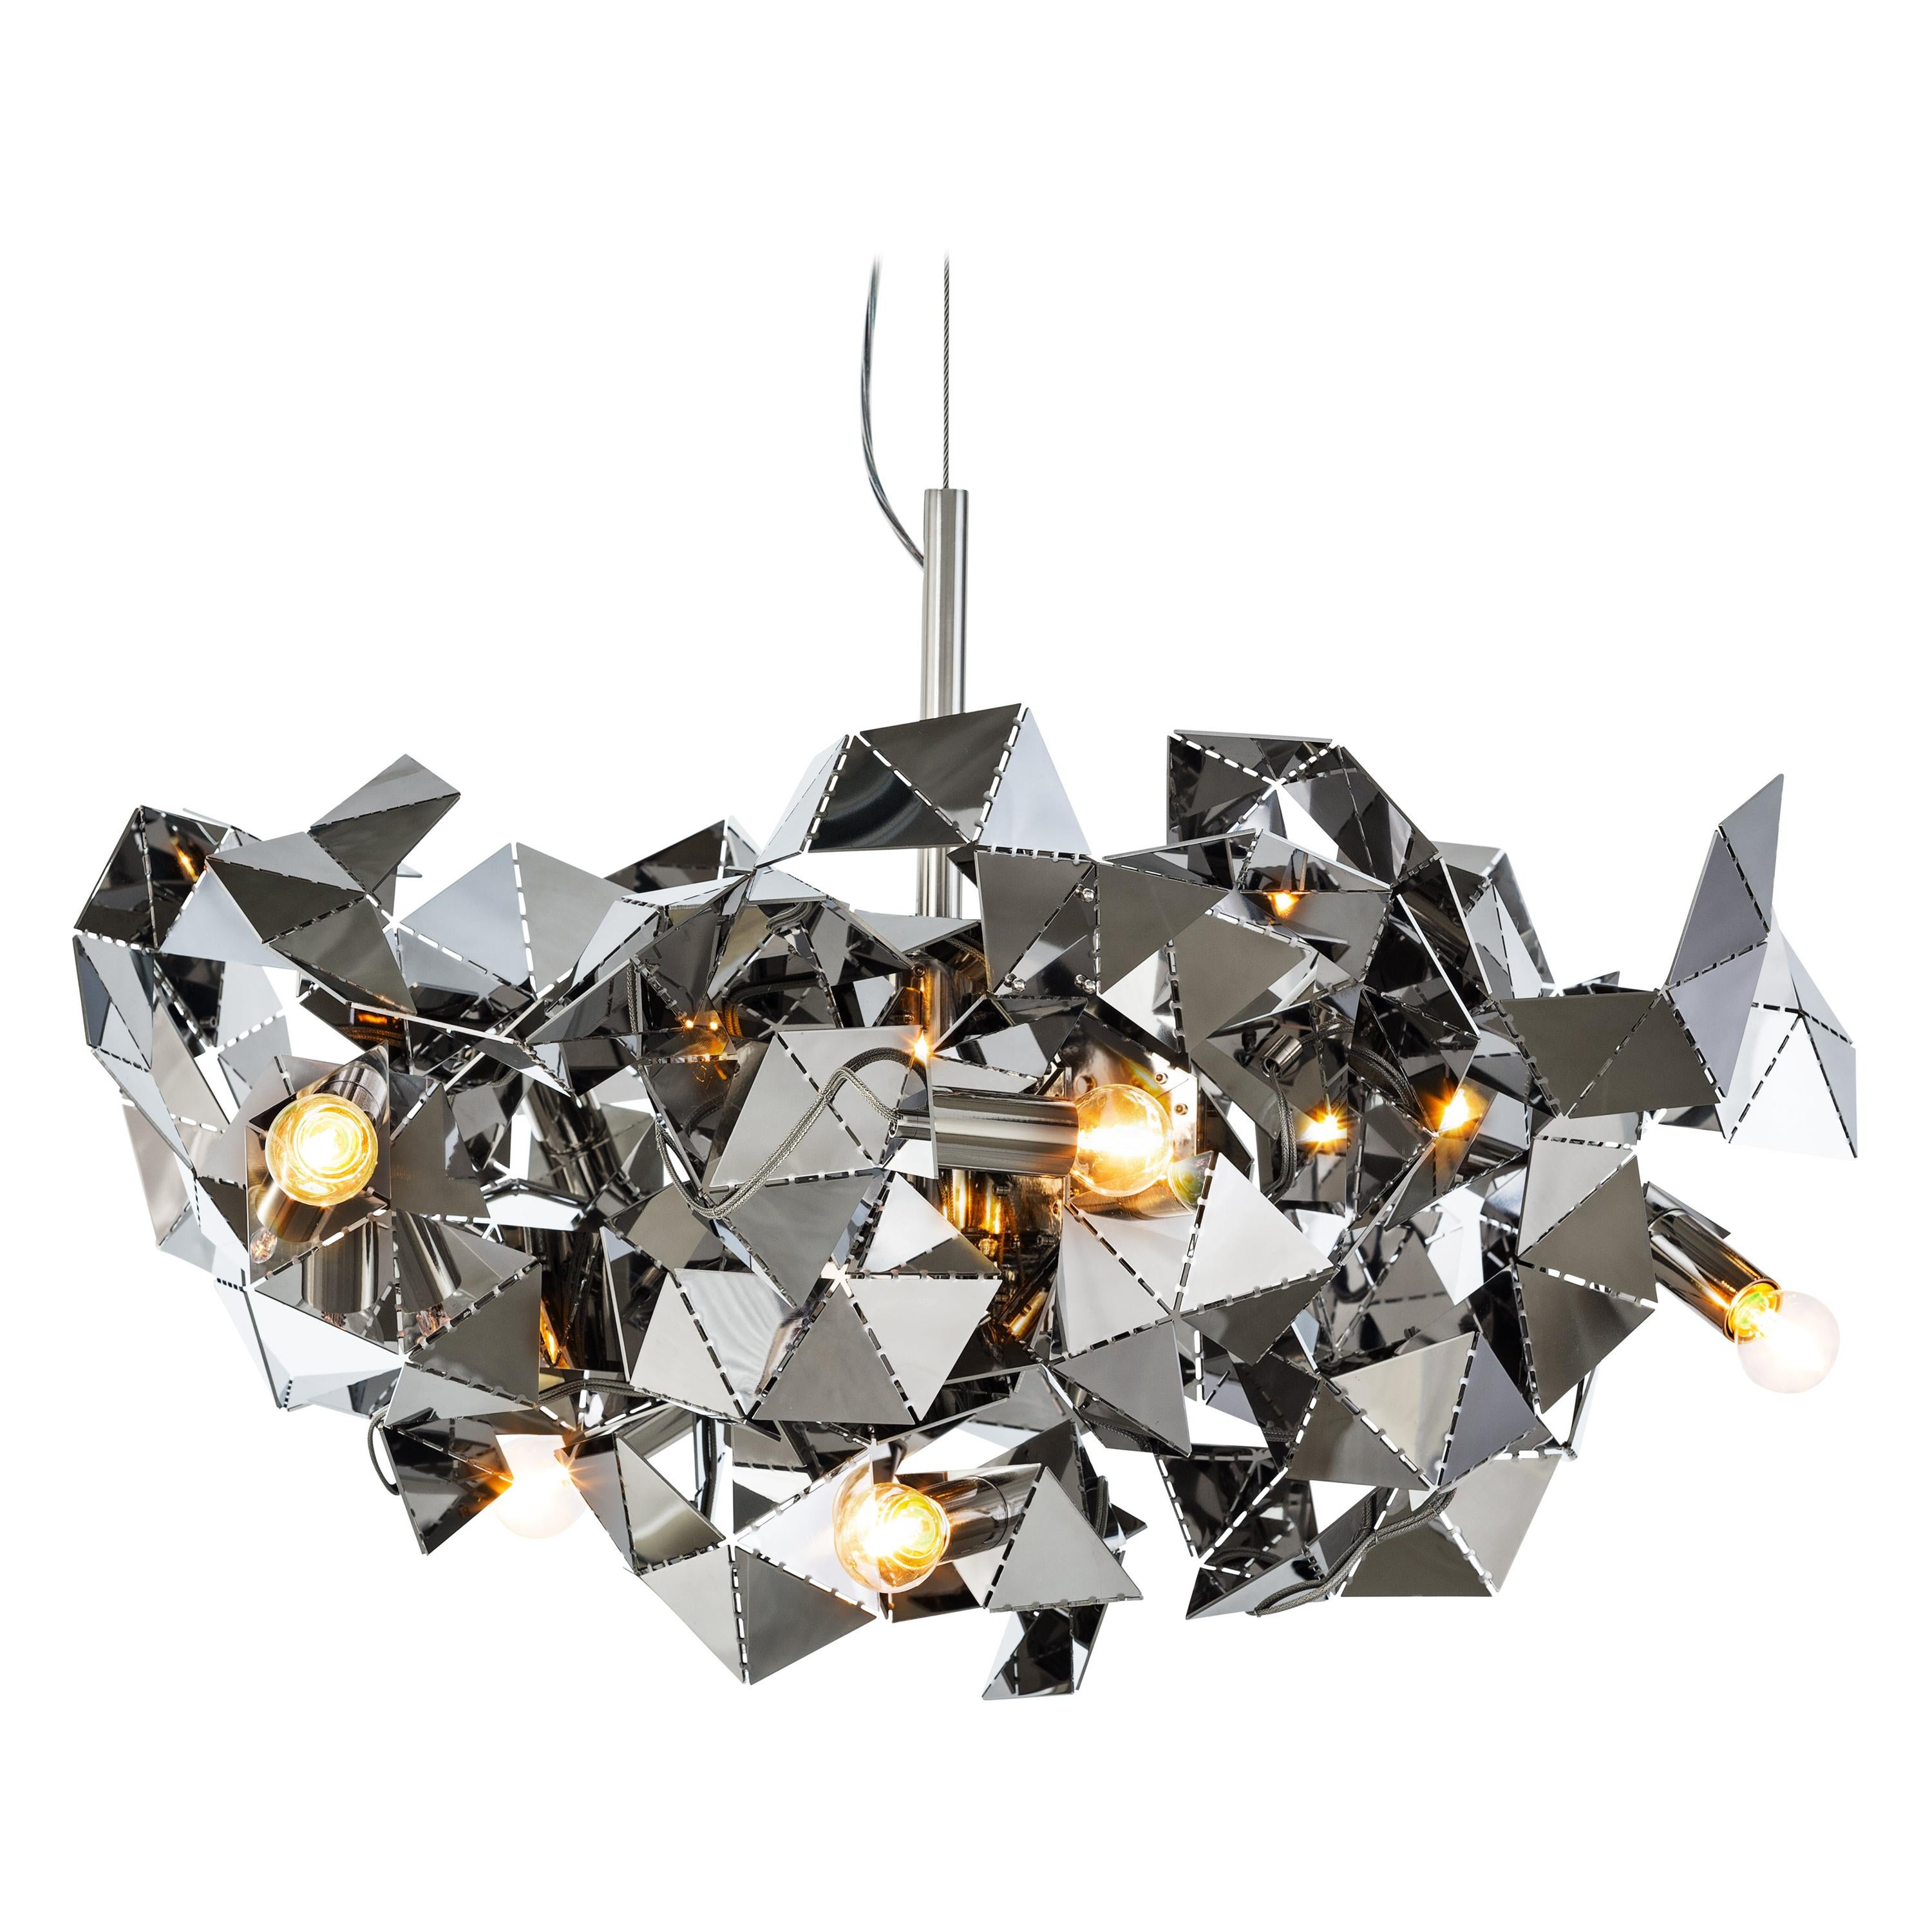 Modern Chandelier in a Stainless Steel Finish - Fractal Collection, by Brand Van